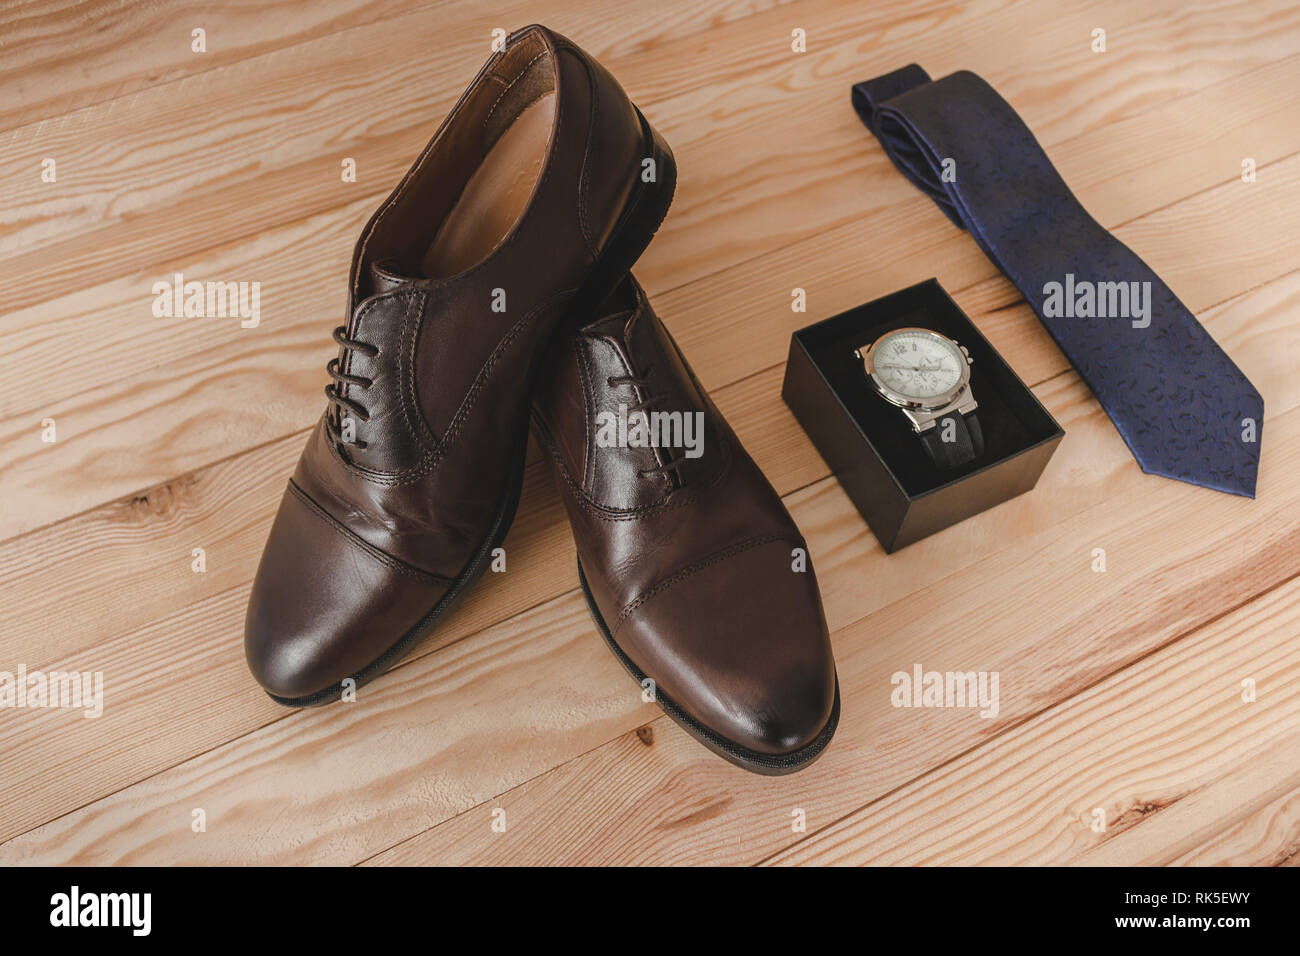 1d297c9e Shoes, tie and watch as accessories to dress elegantly Stock Photo ...